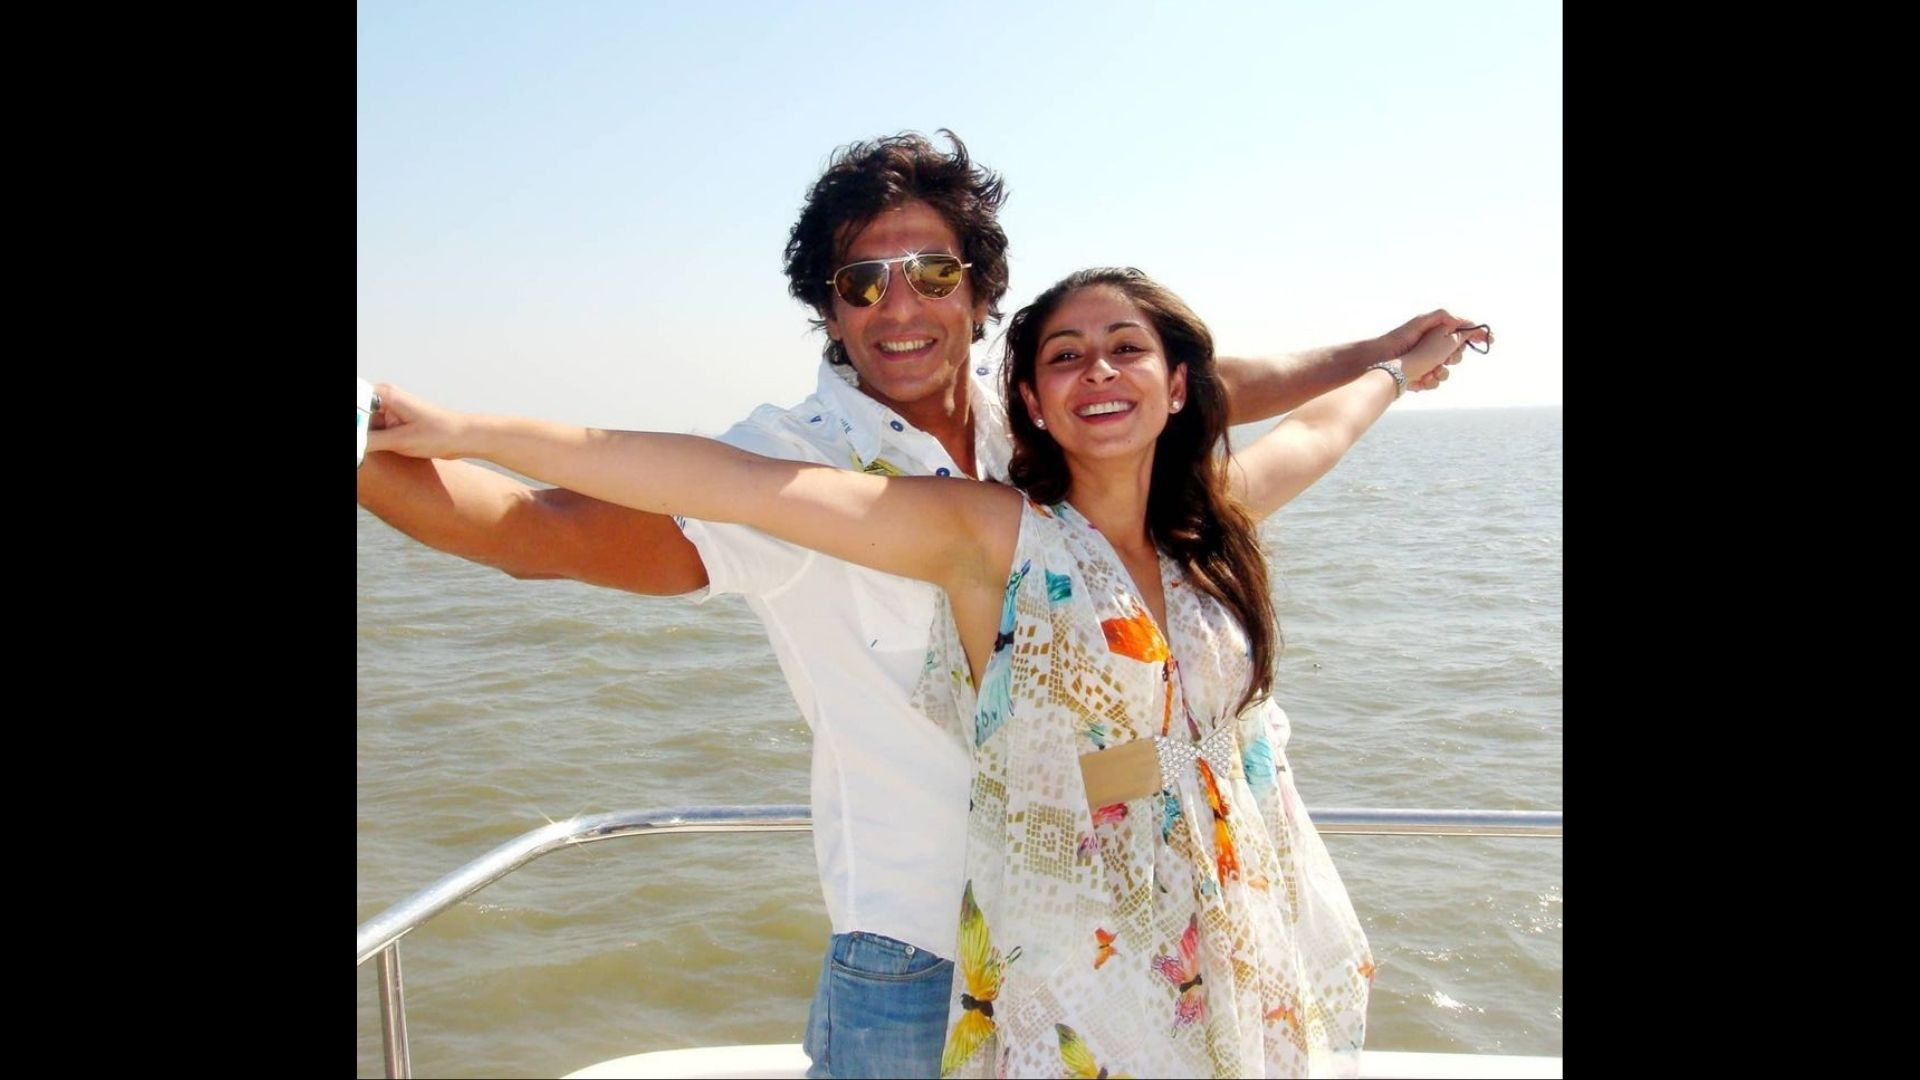 Chunky Pandey reveals the funny incident where wife Bhavana Pandey fed him raw chicken when they were a newlywed couple